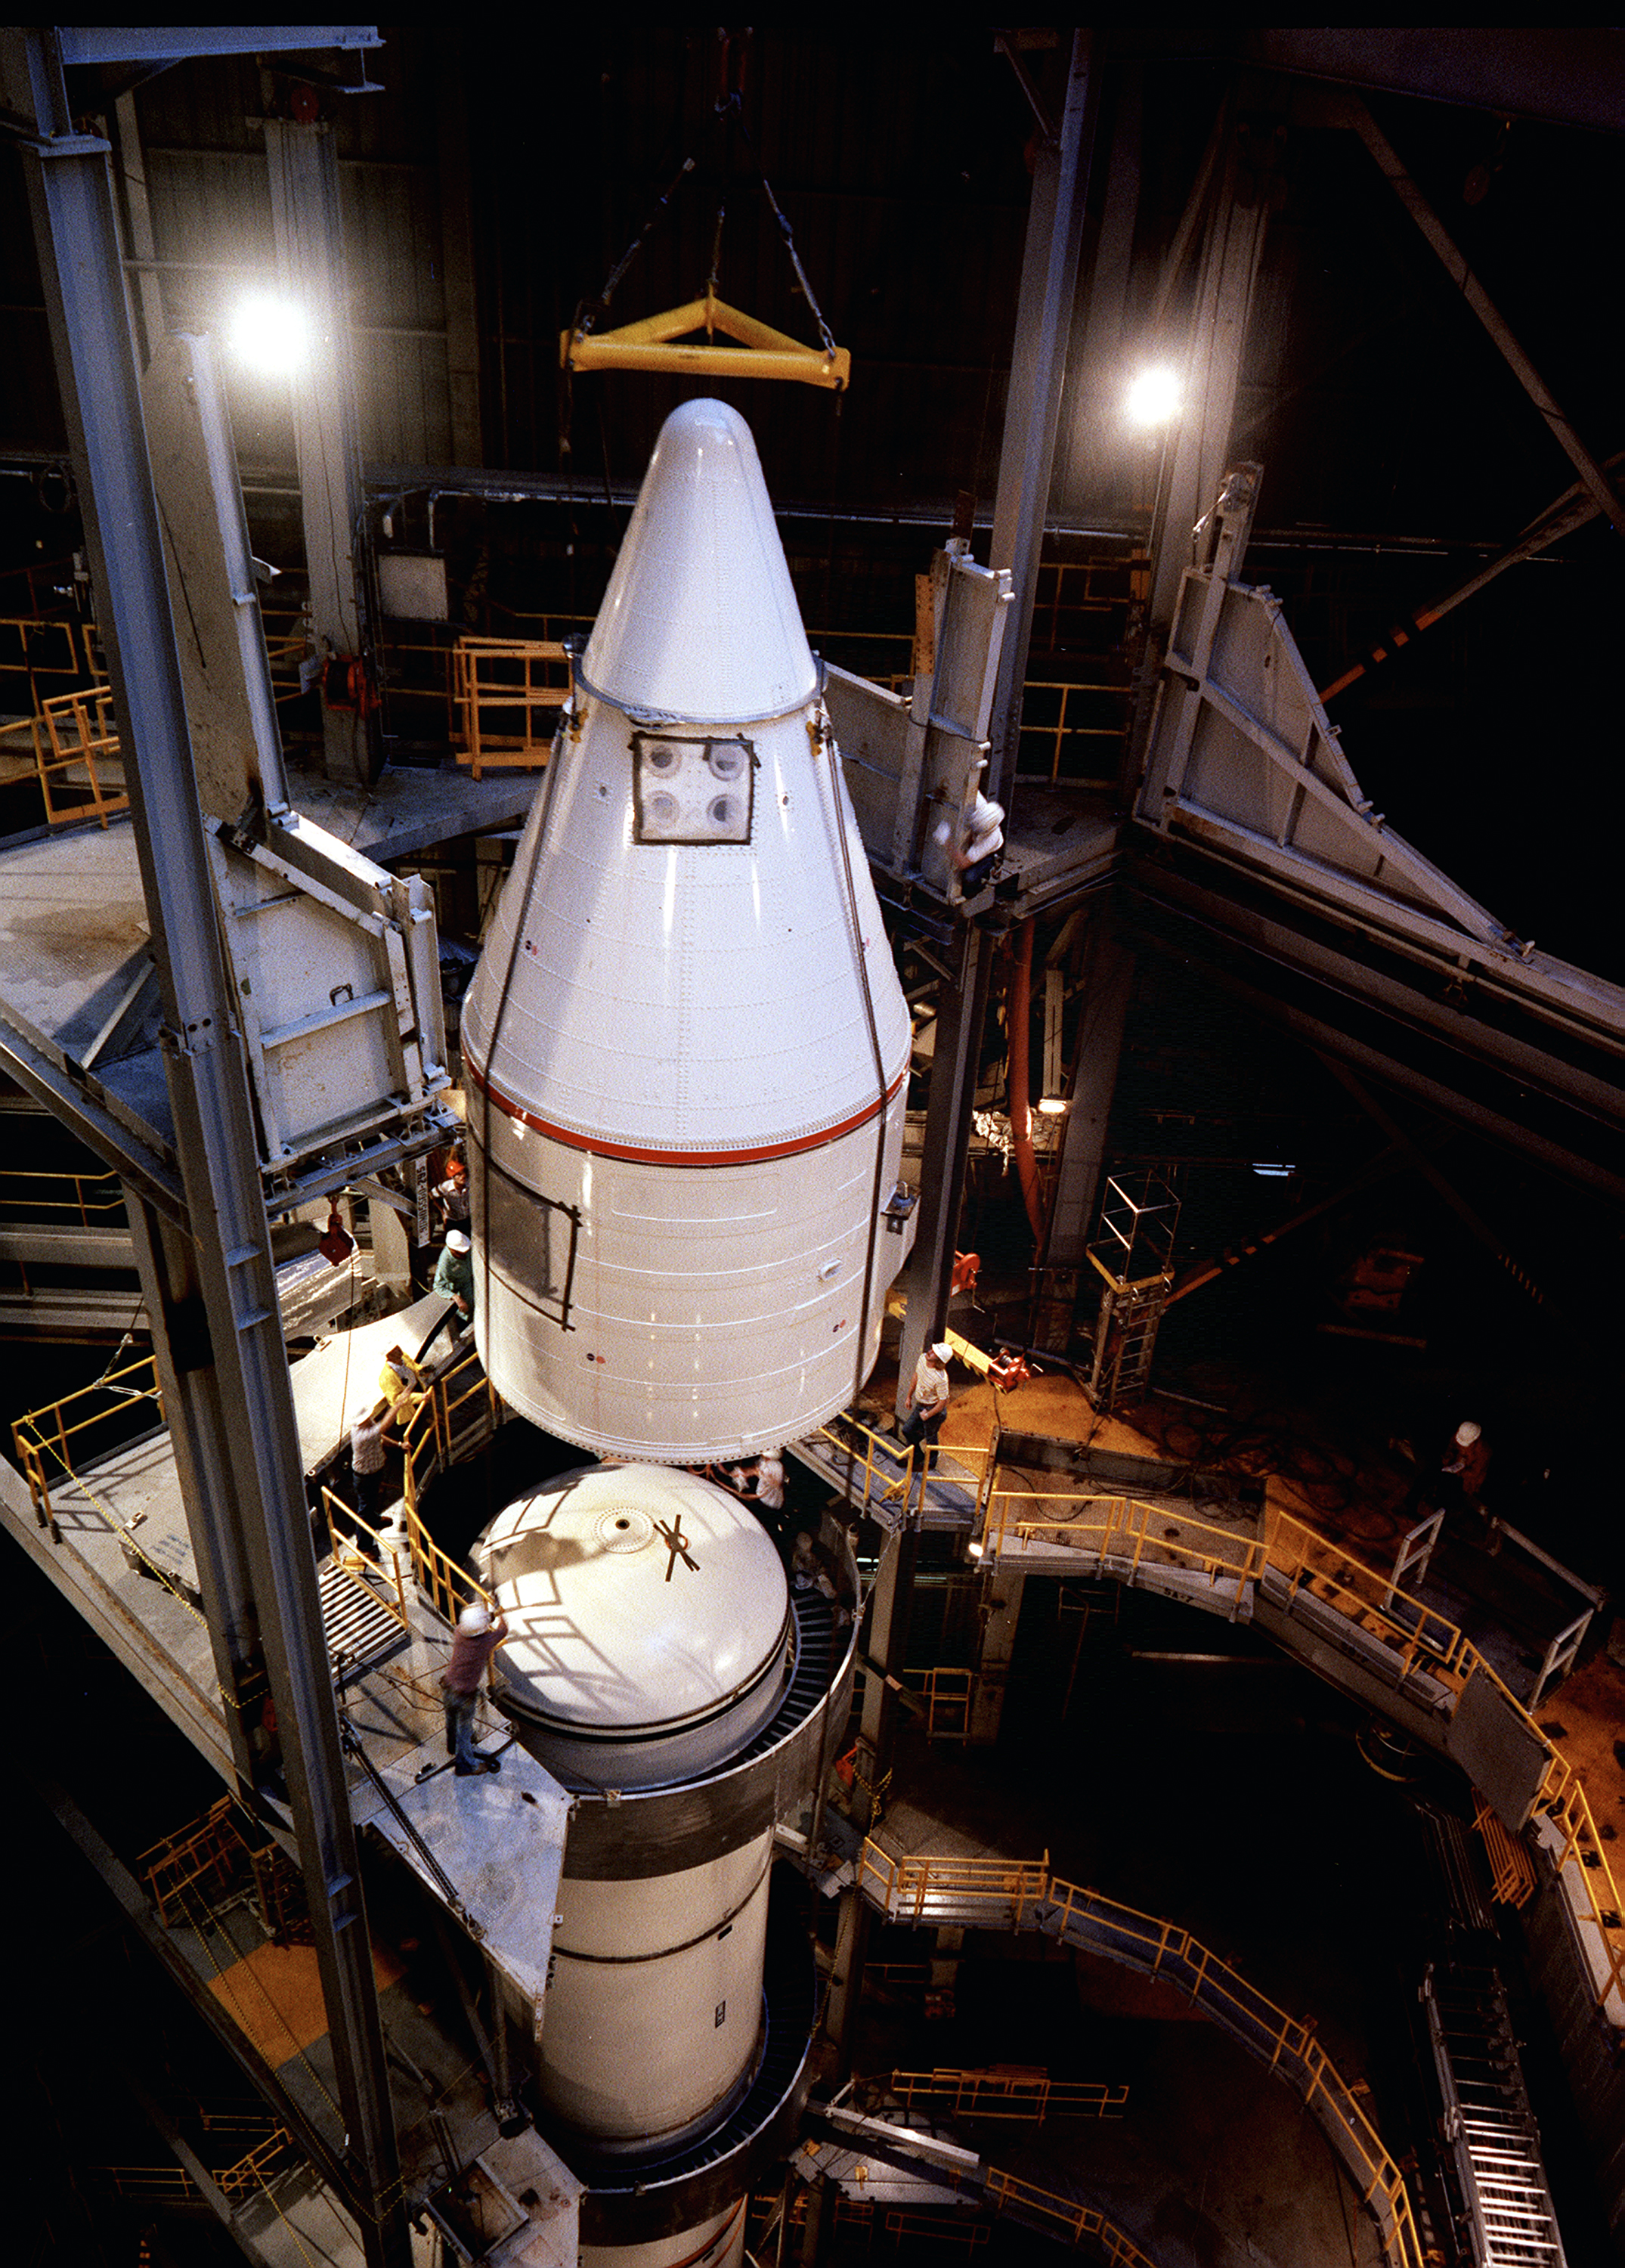 stacking space shuttle srb - photo #6